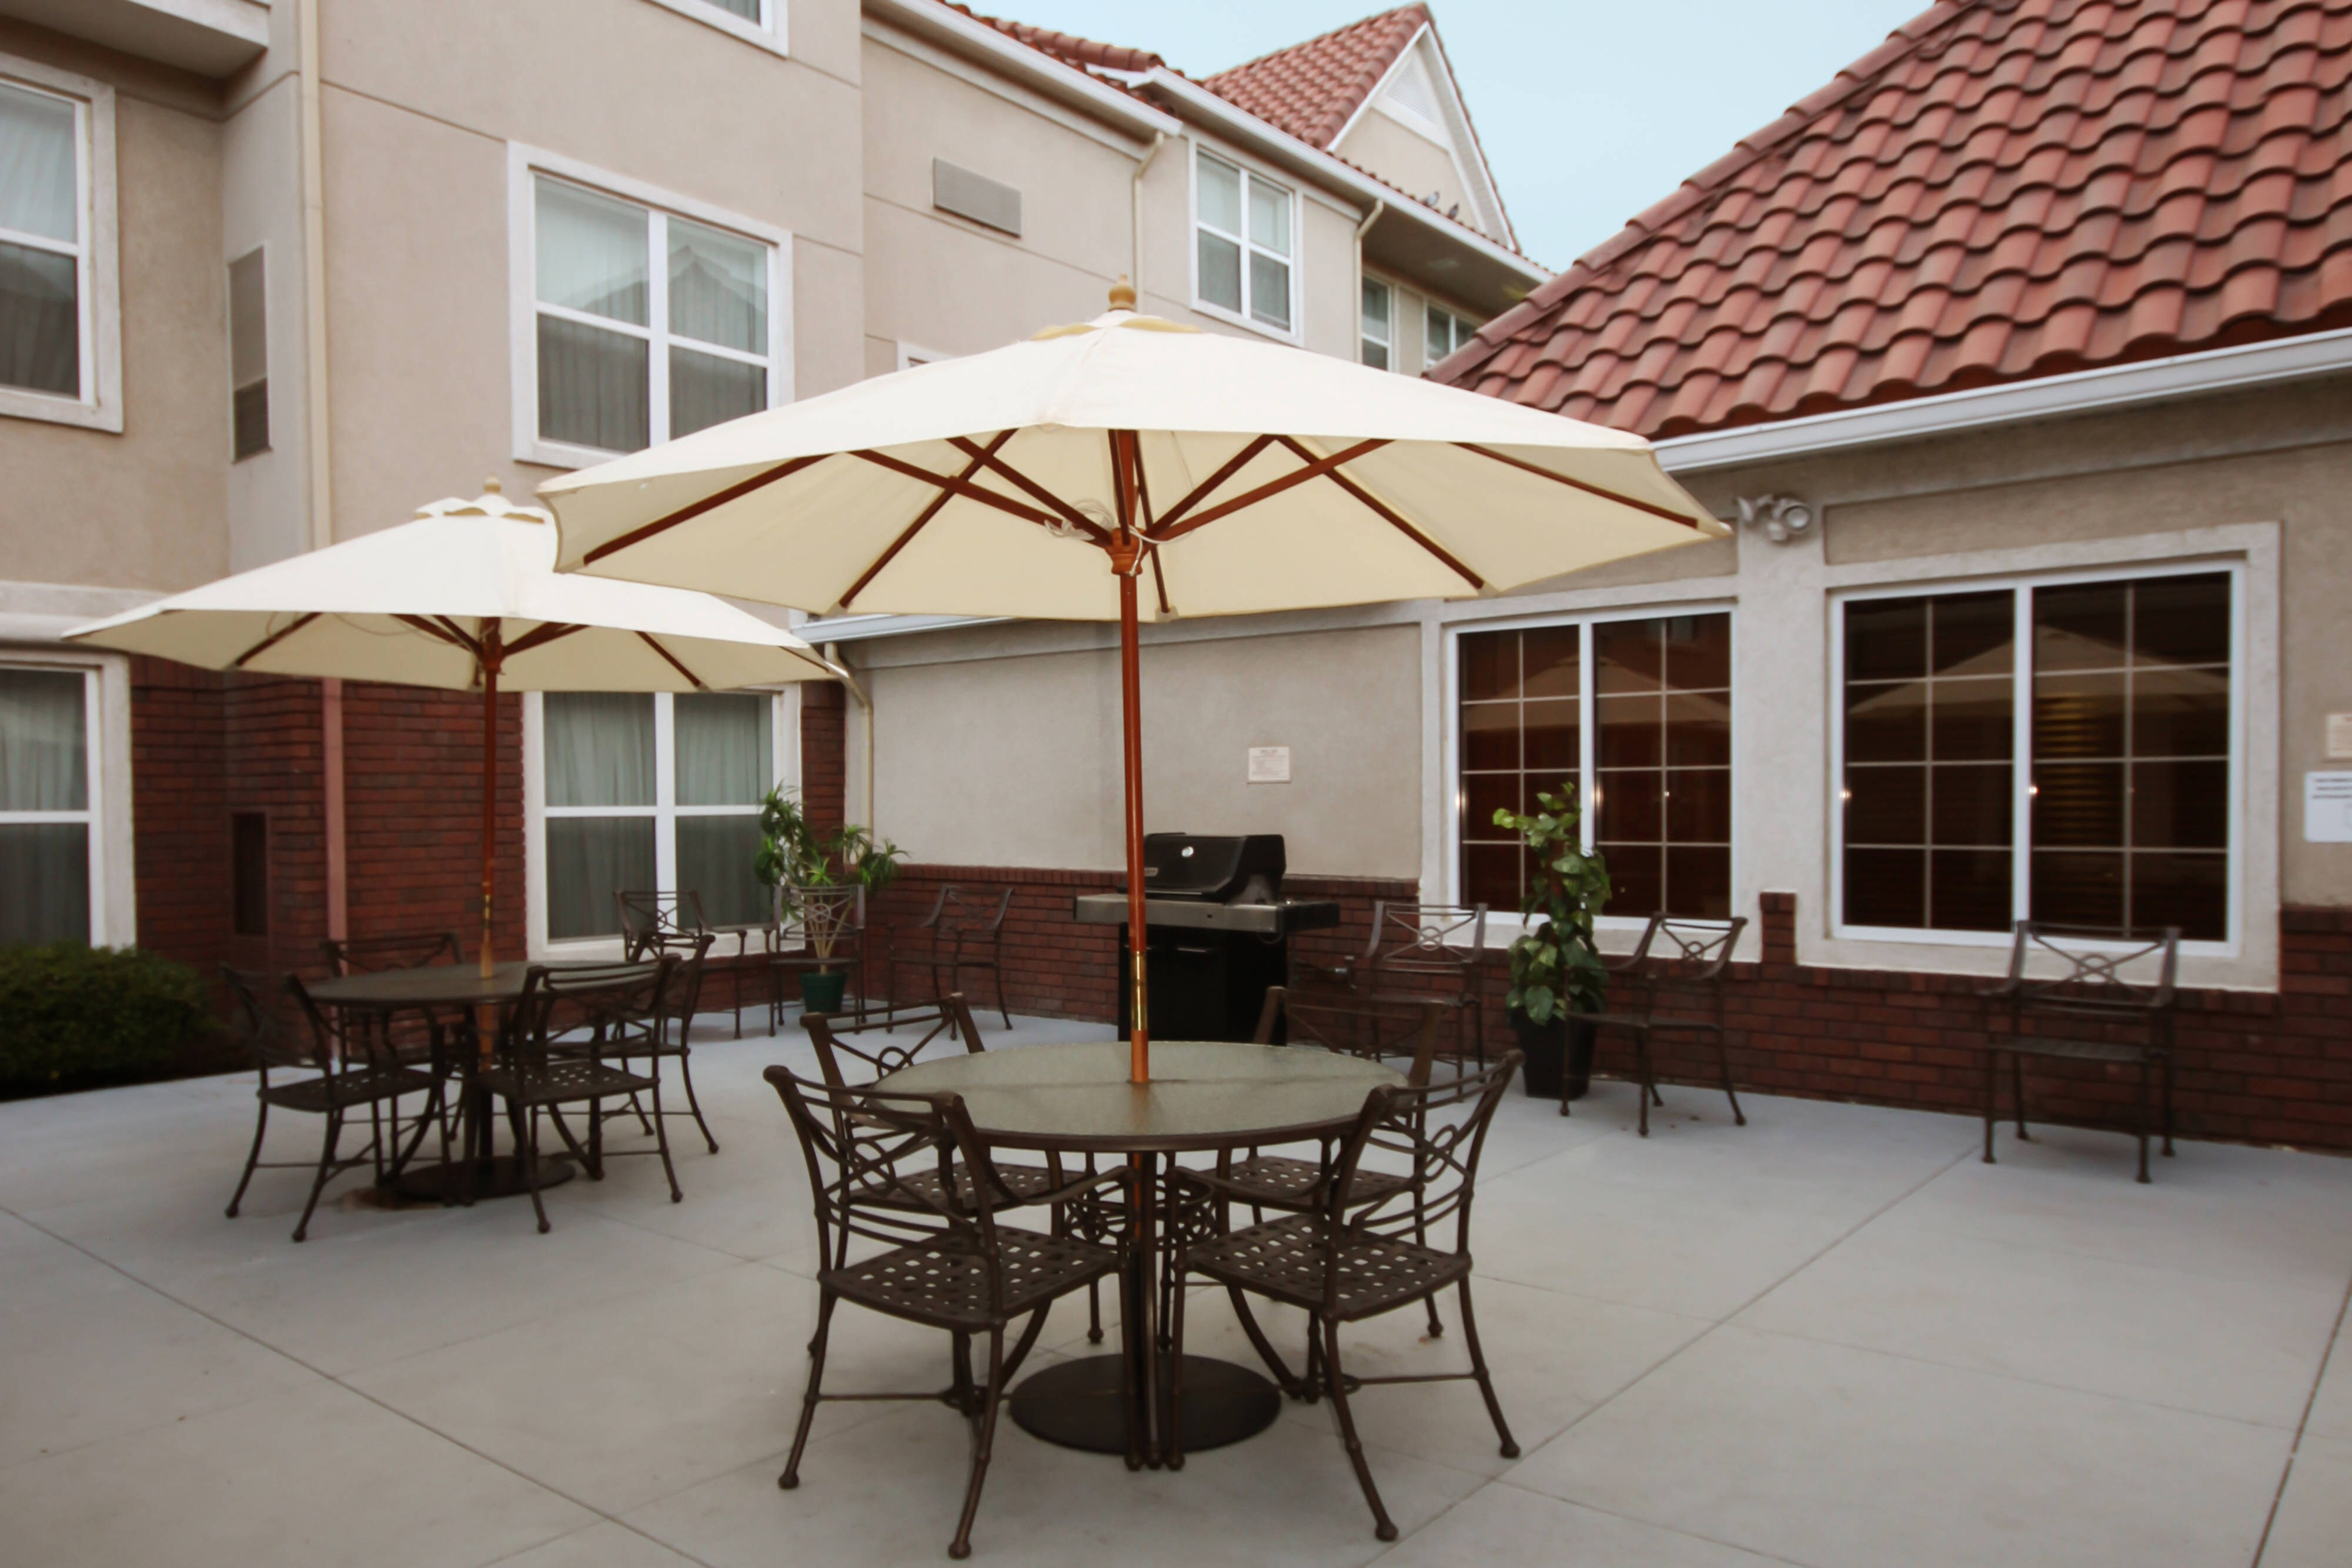 Palmdale Lancaster hotel courtyard patio